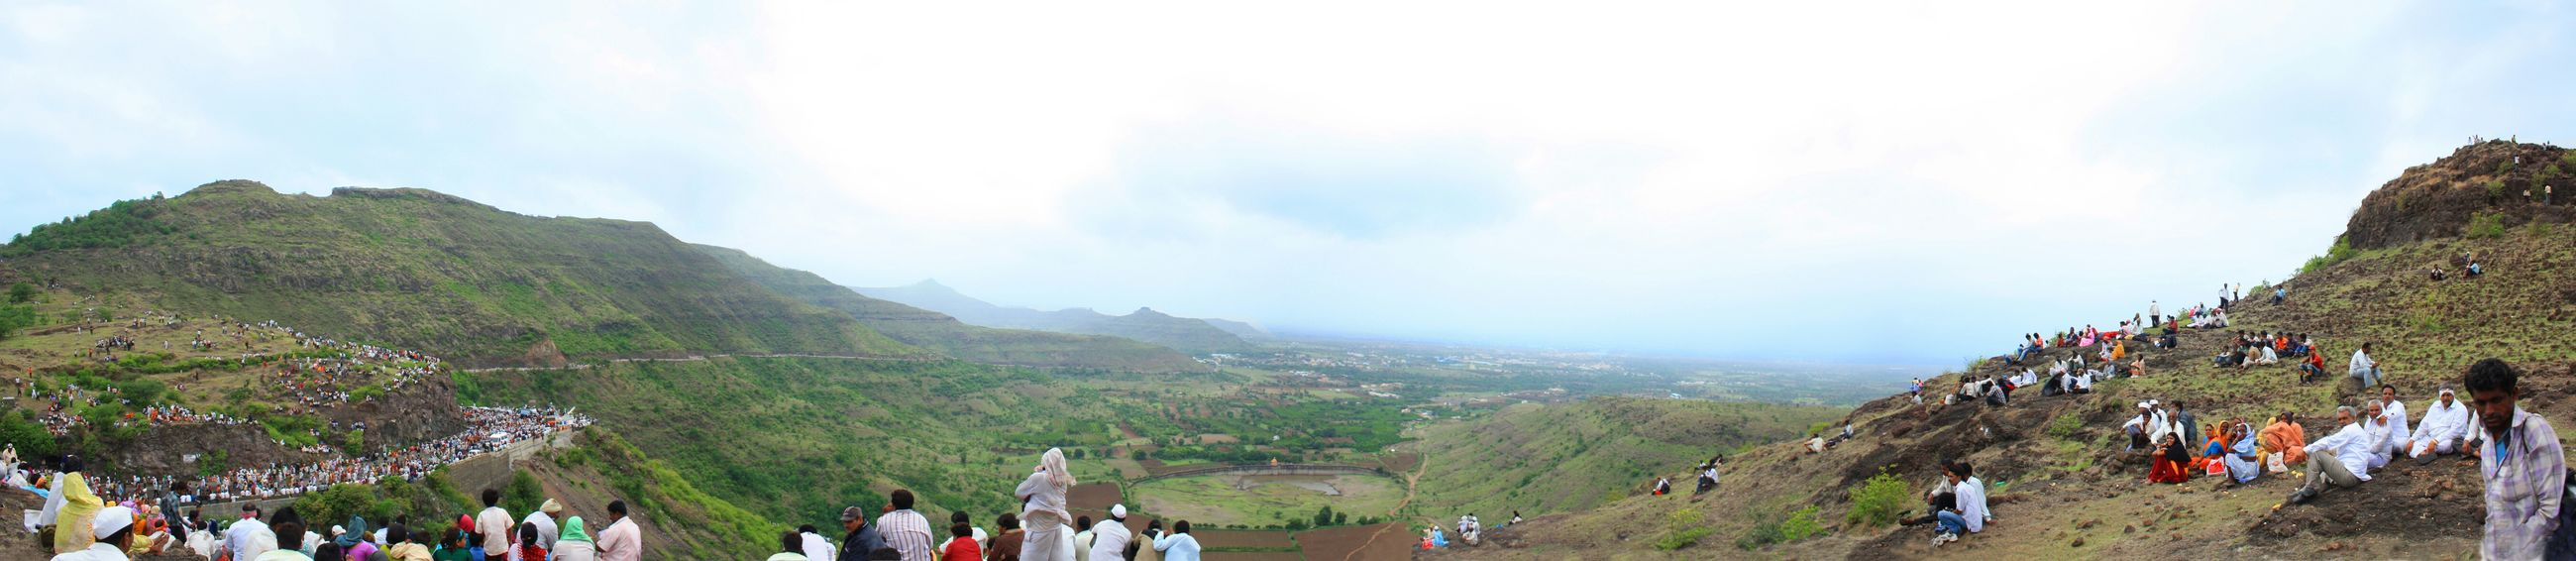 Pilgrims.... On their way. People Pilgrims Panoramic Photography Panorama Mountains Pune Mob